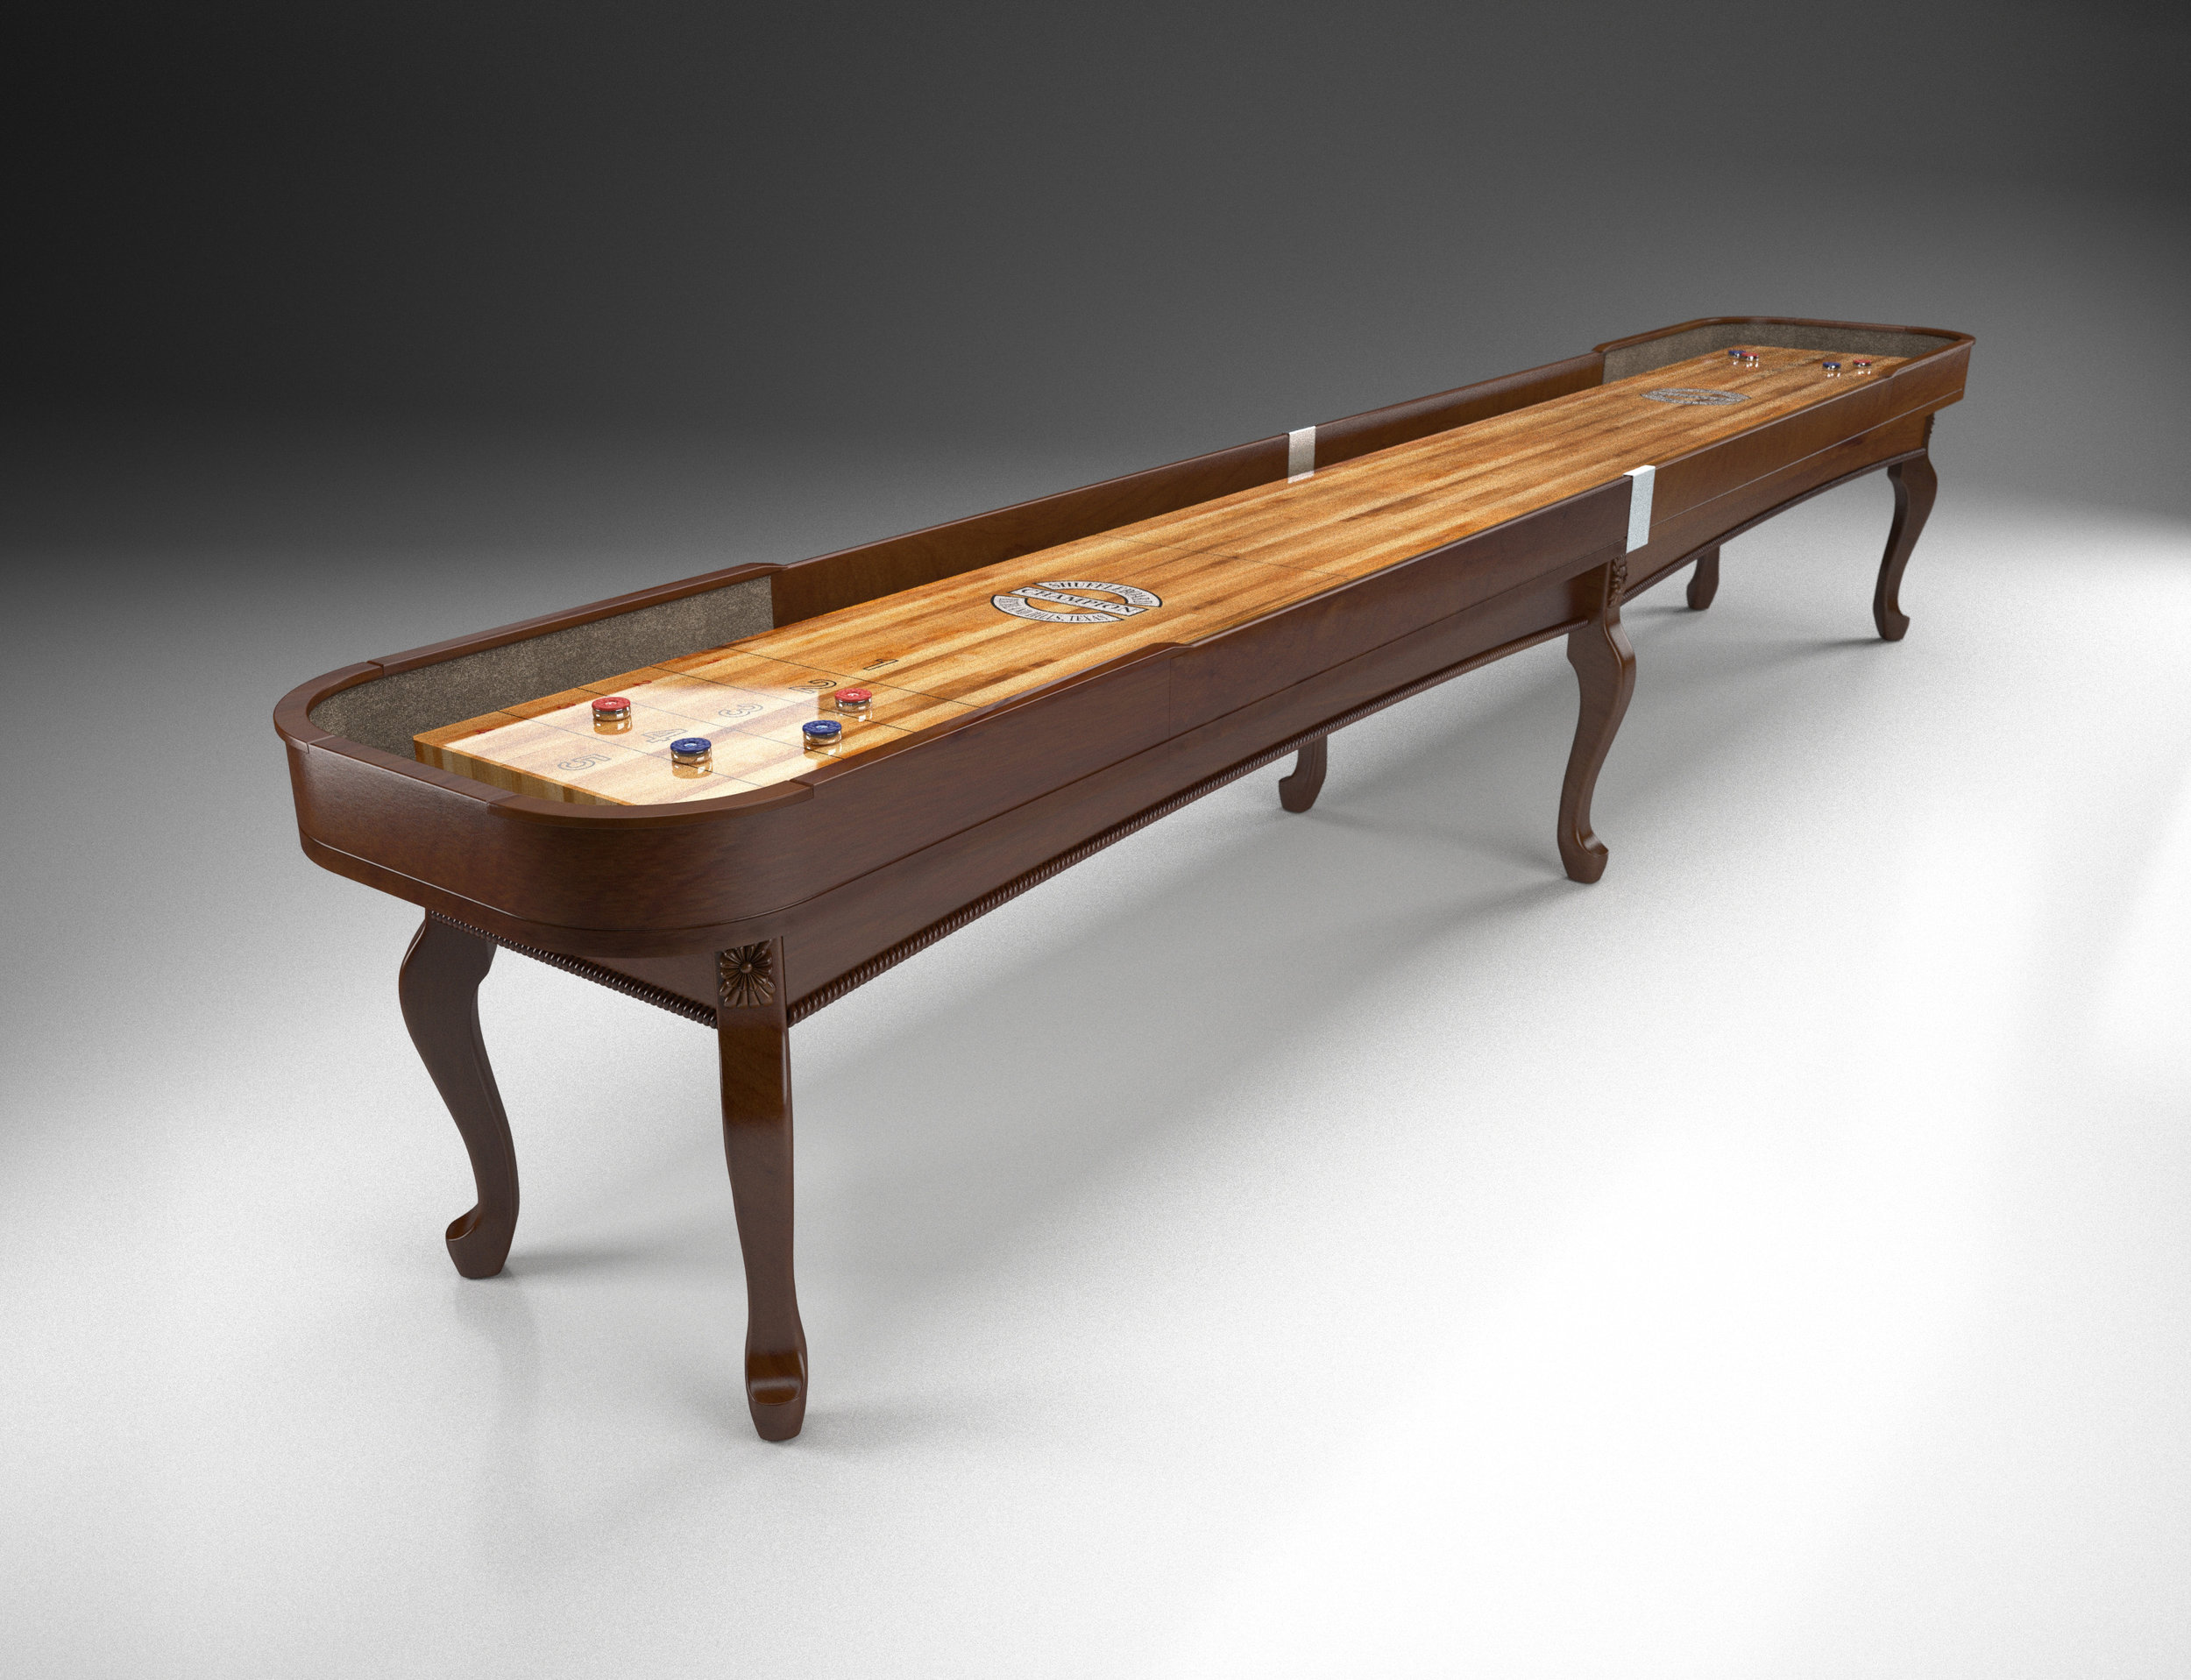 """Champion Madison  Specifications  Playfield Size: 3"""" thick x 20"""" wide  Cradle Lengths: 12' - 22' (22' tournament size)  Width: 31"""" without scoring unit; 36"""" with scoring unit  Height: 30"""" to the top of the playfield  Weight: 50 lbs per foot (approximately)"""